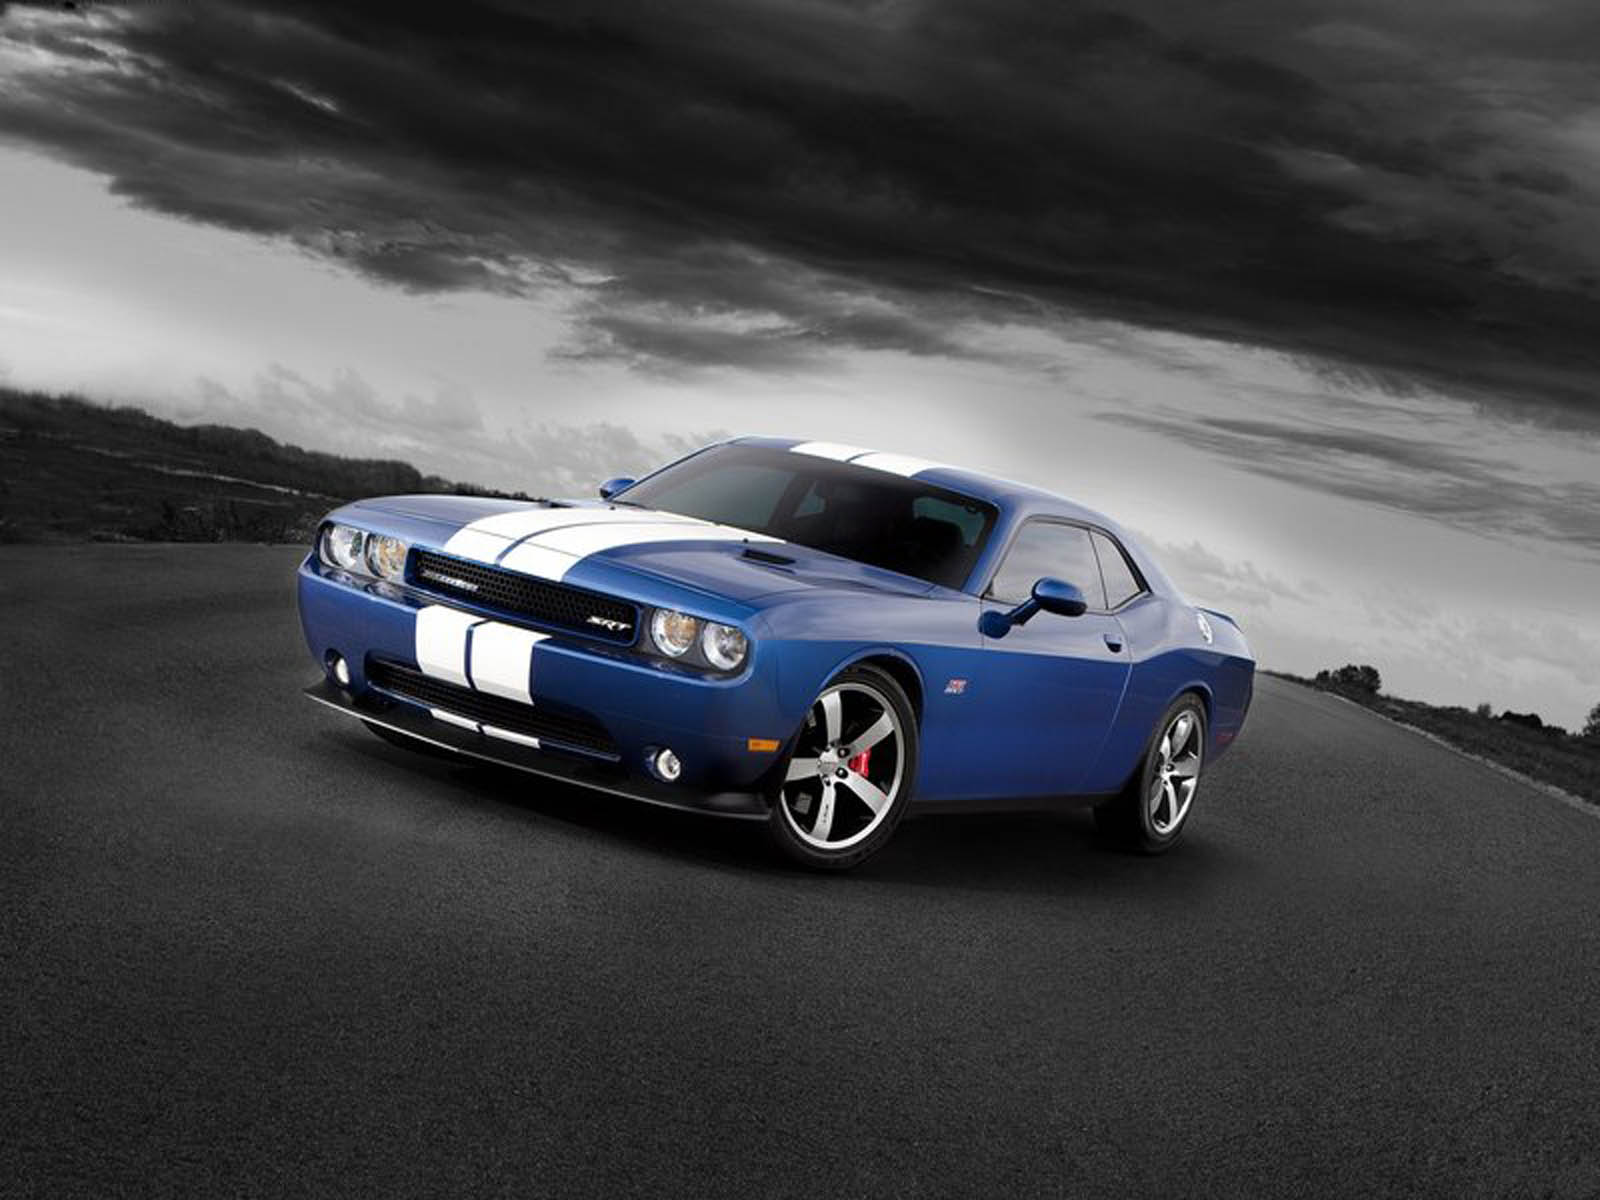 tag dodge challenger srt8 car wallpapers images paos pictures and 1600x1200